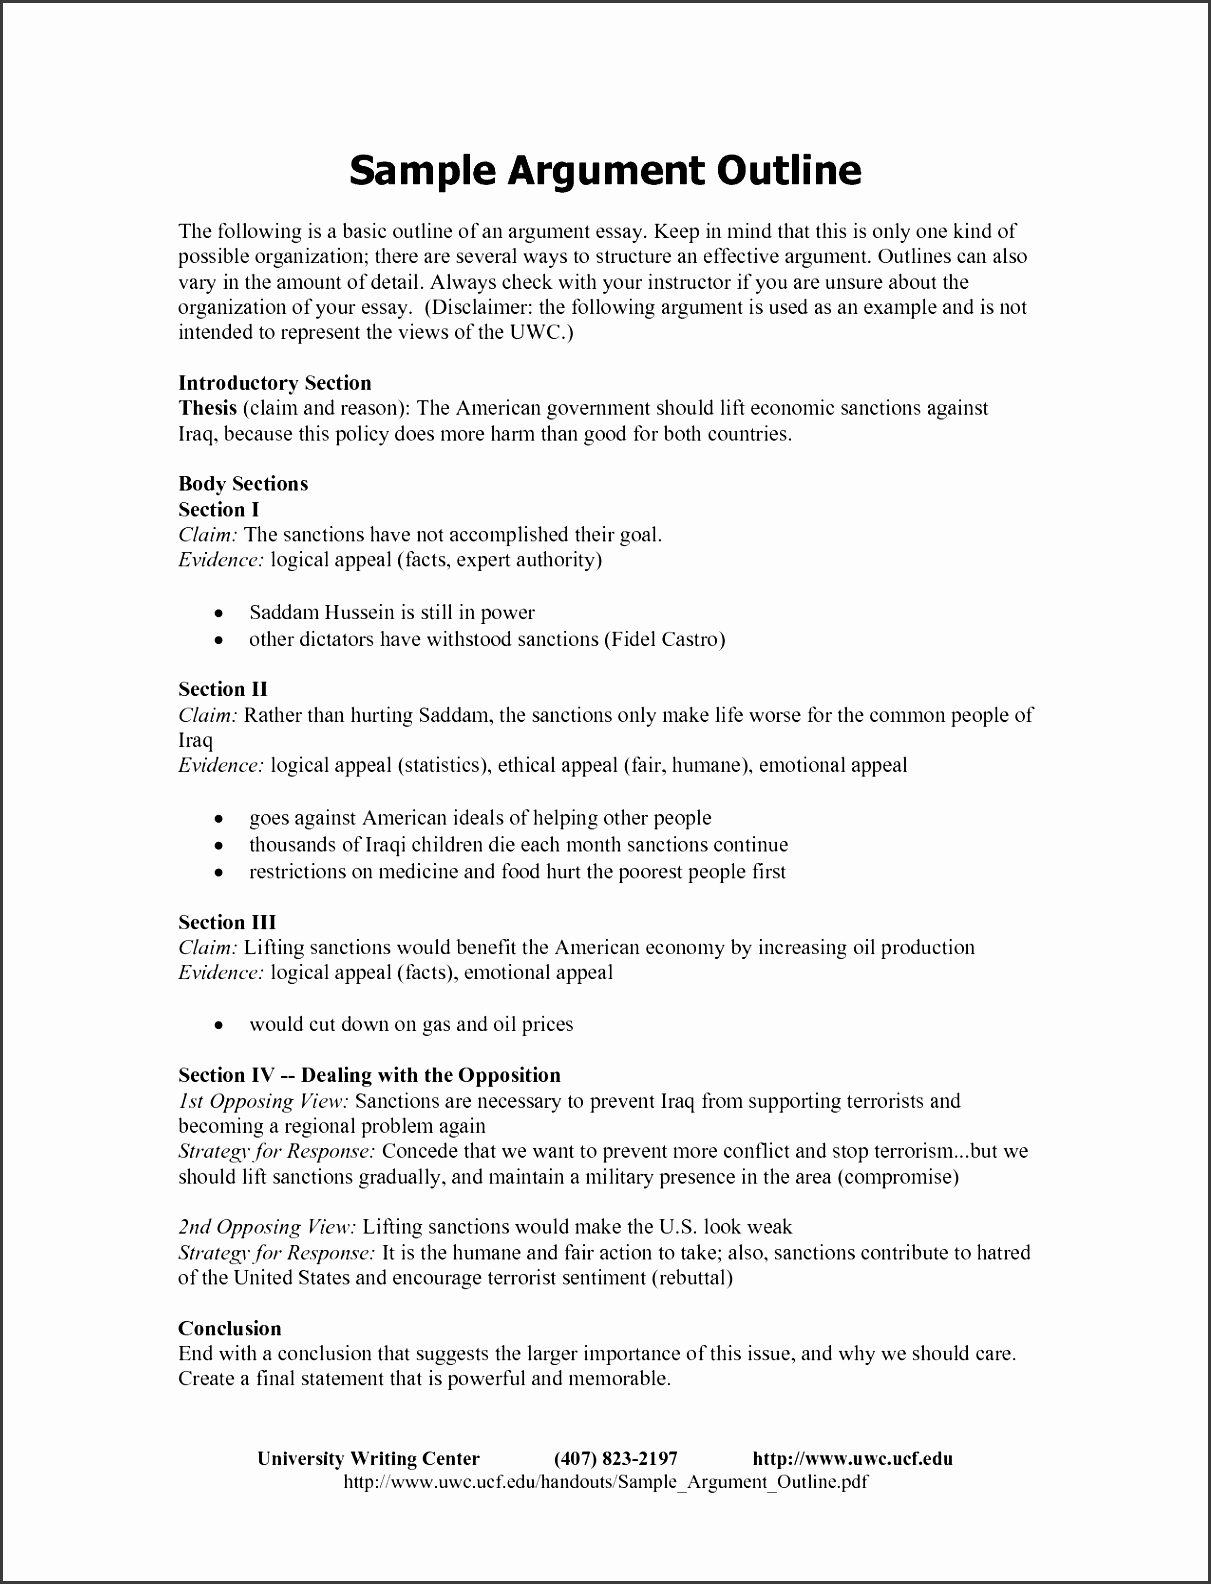 example of a persuasive essay outline 6 collection solutions sample outline for persuasive essay